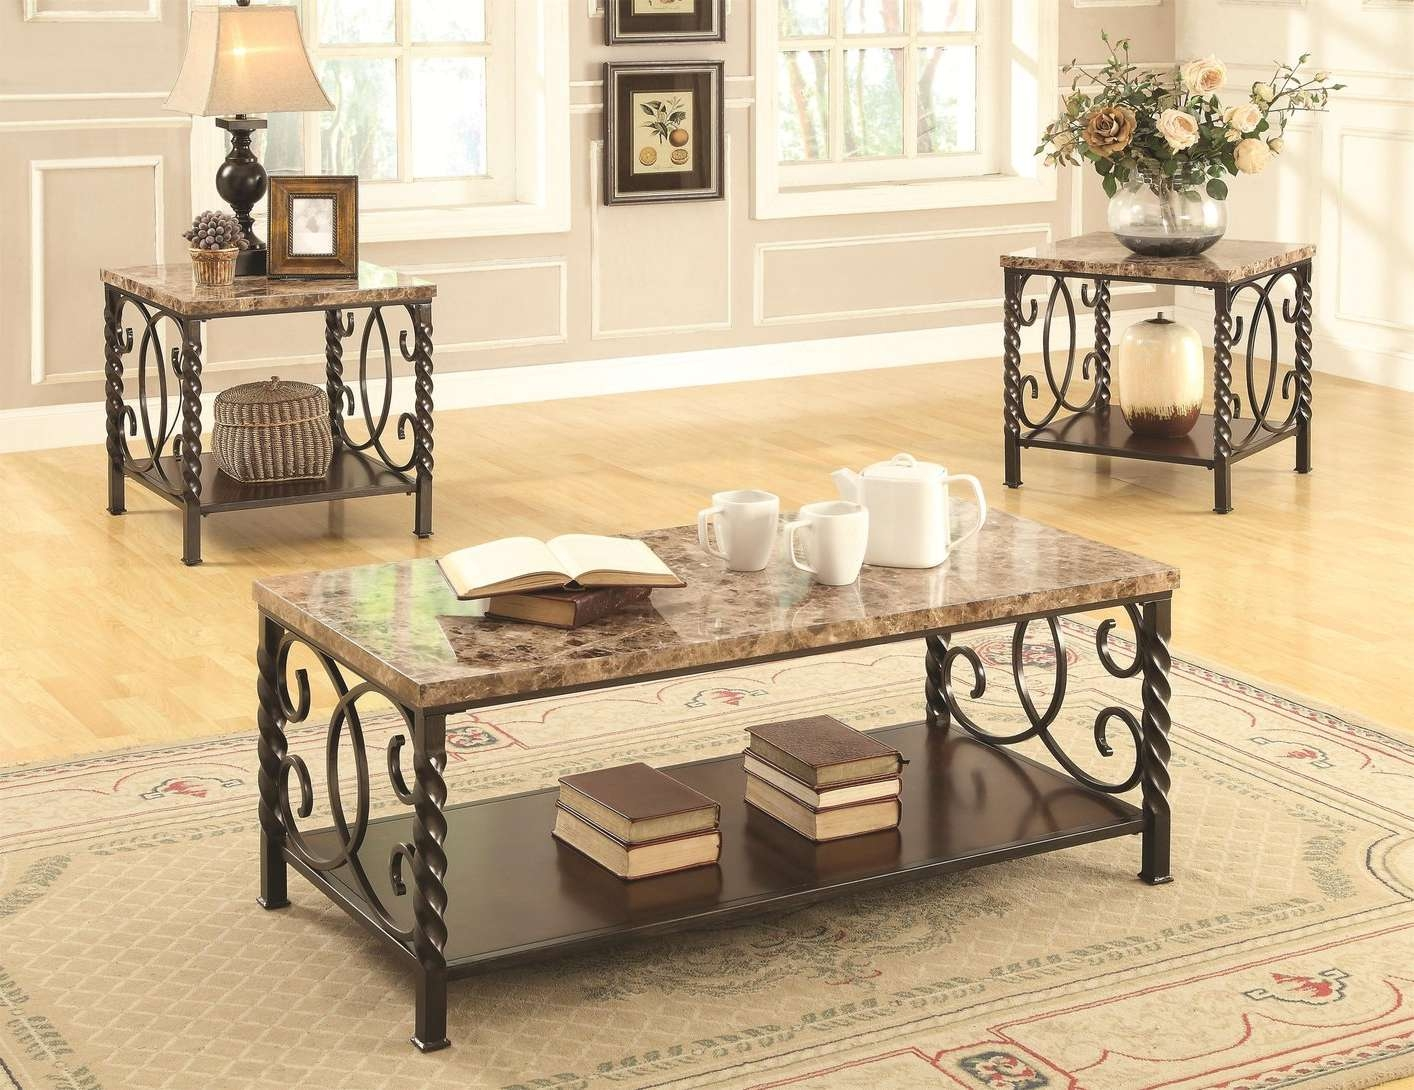 Lockhart Brown Marble Coffee Table Set – Steal A Sofa Furniture Within Current Marble Coffee Tables (View 5 of 20)